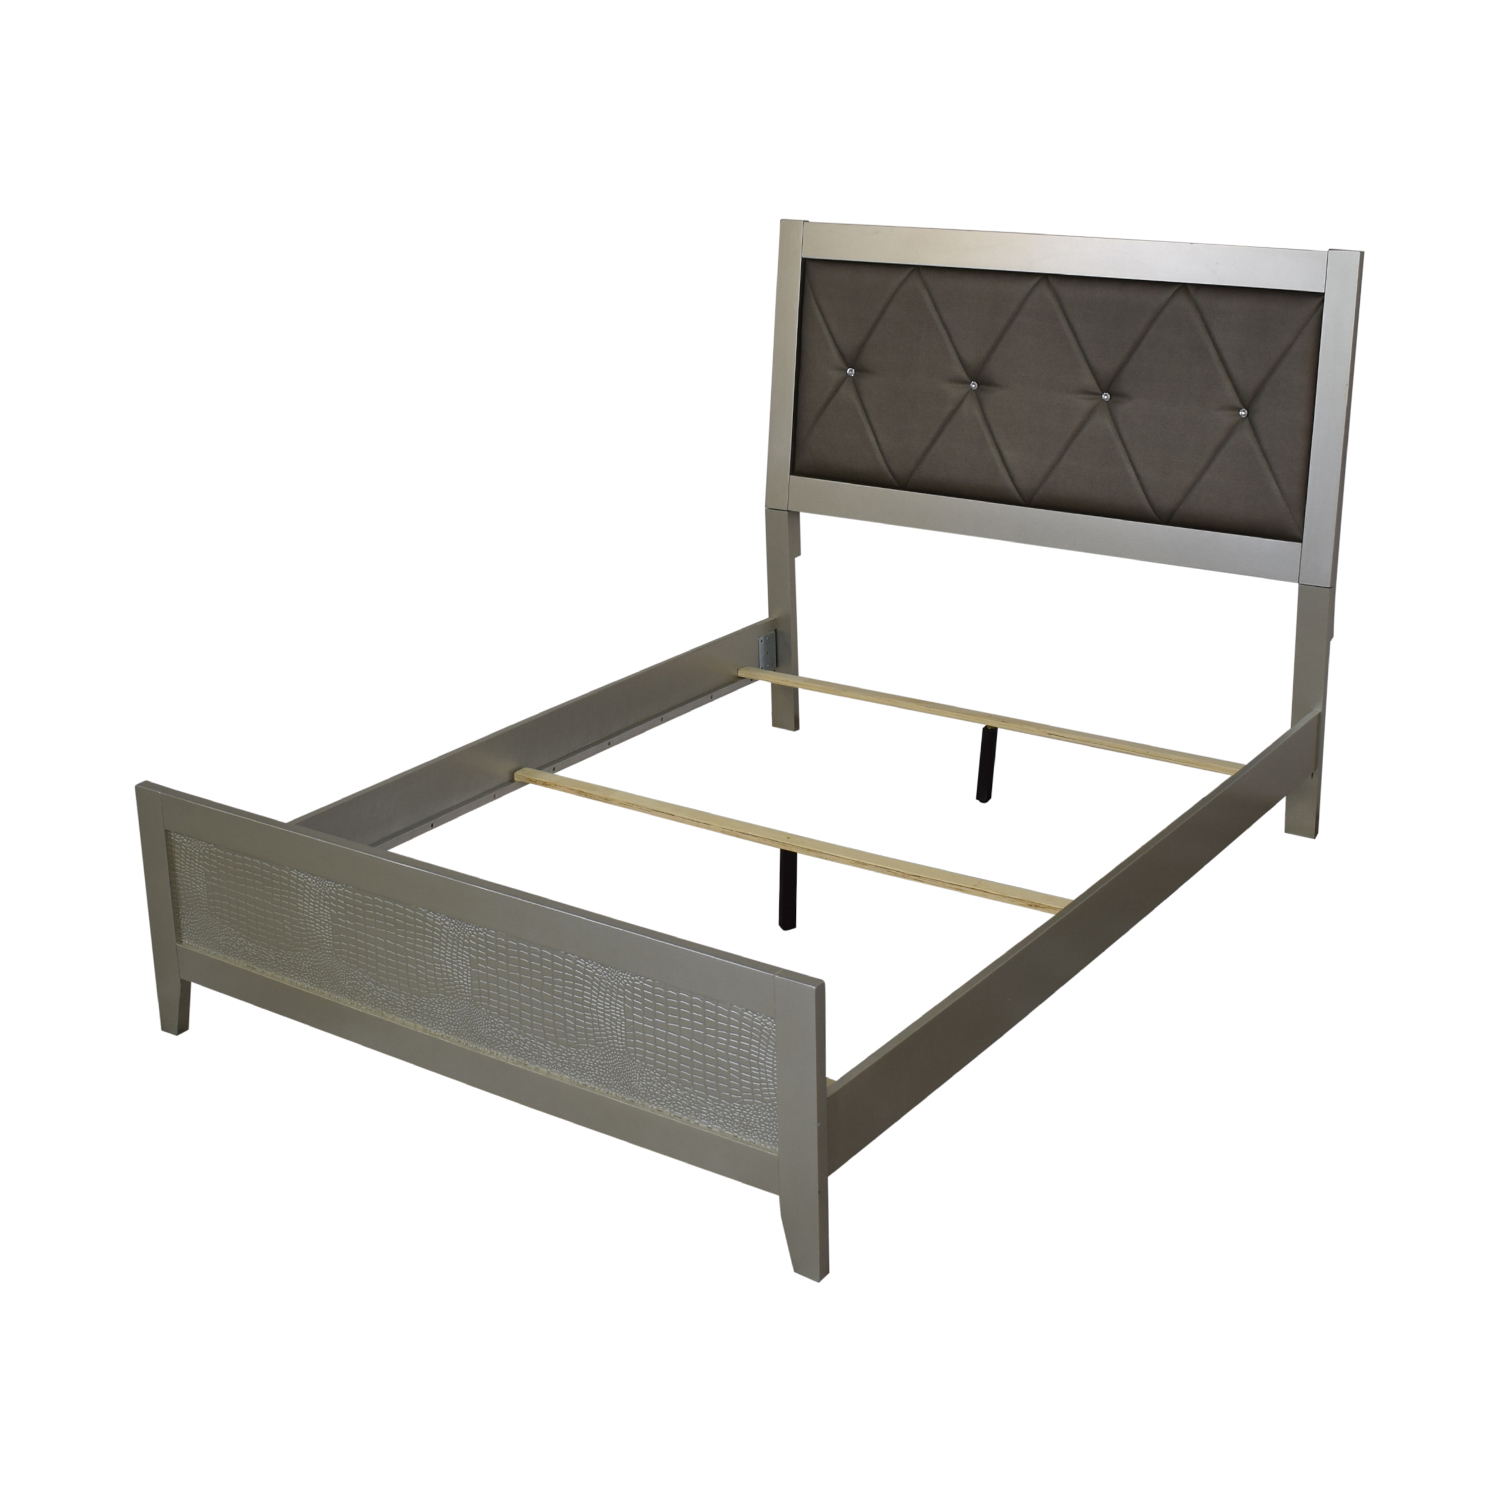 Ashley Furniture Ashley Furniture Full Bed price